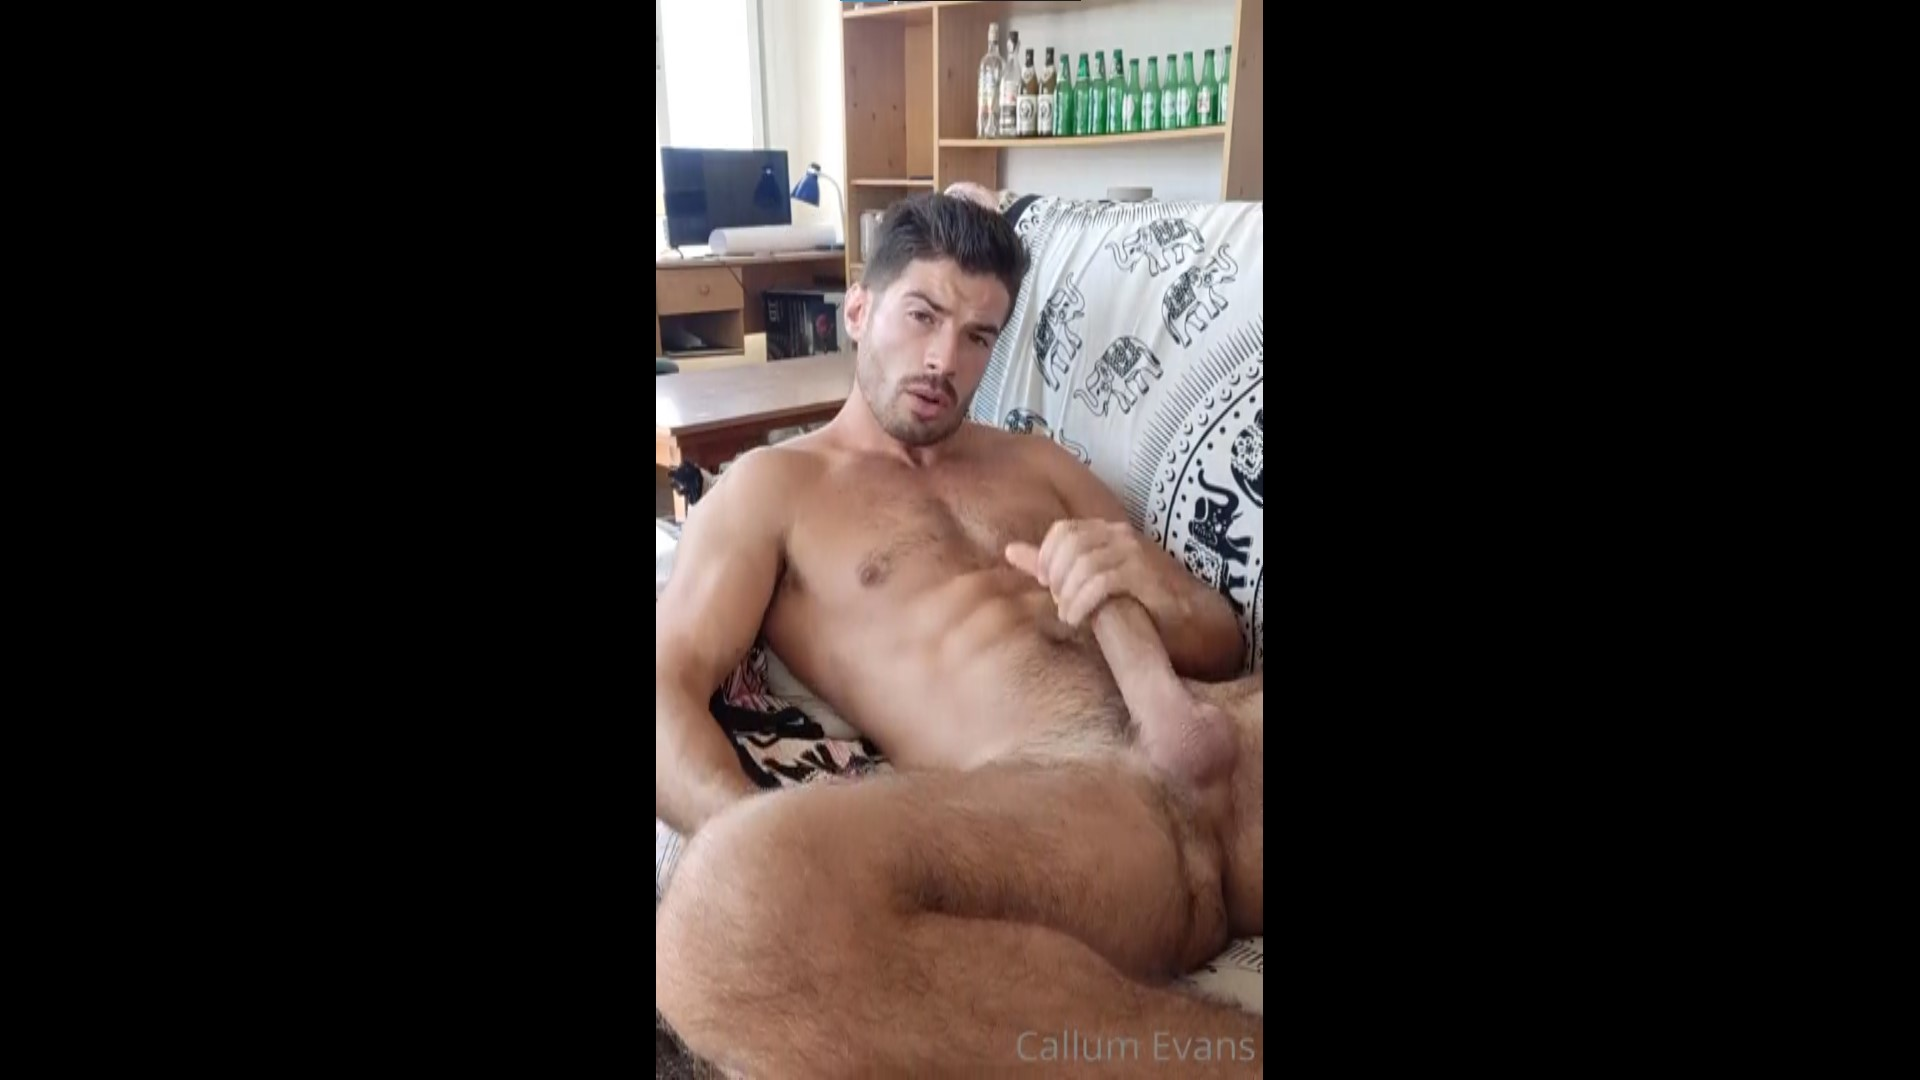 Jerking off hard and cumming over my abs - Callum Evans